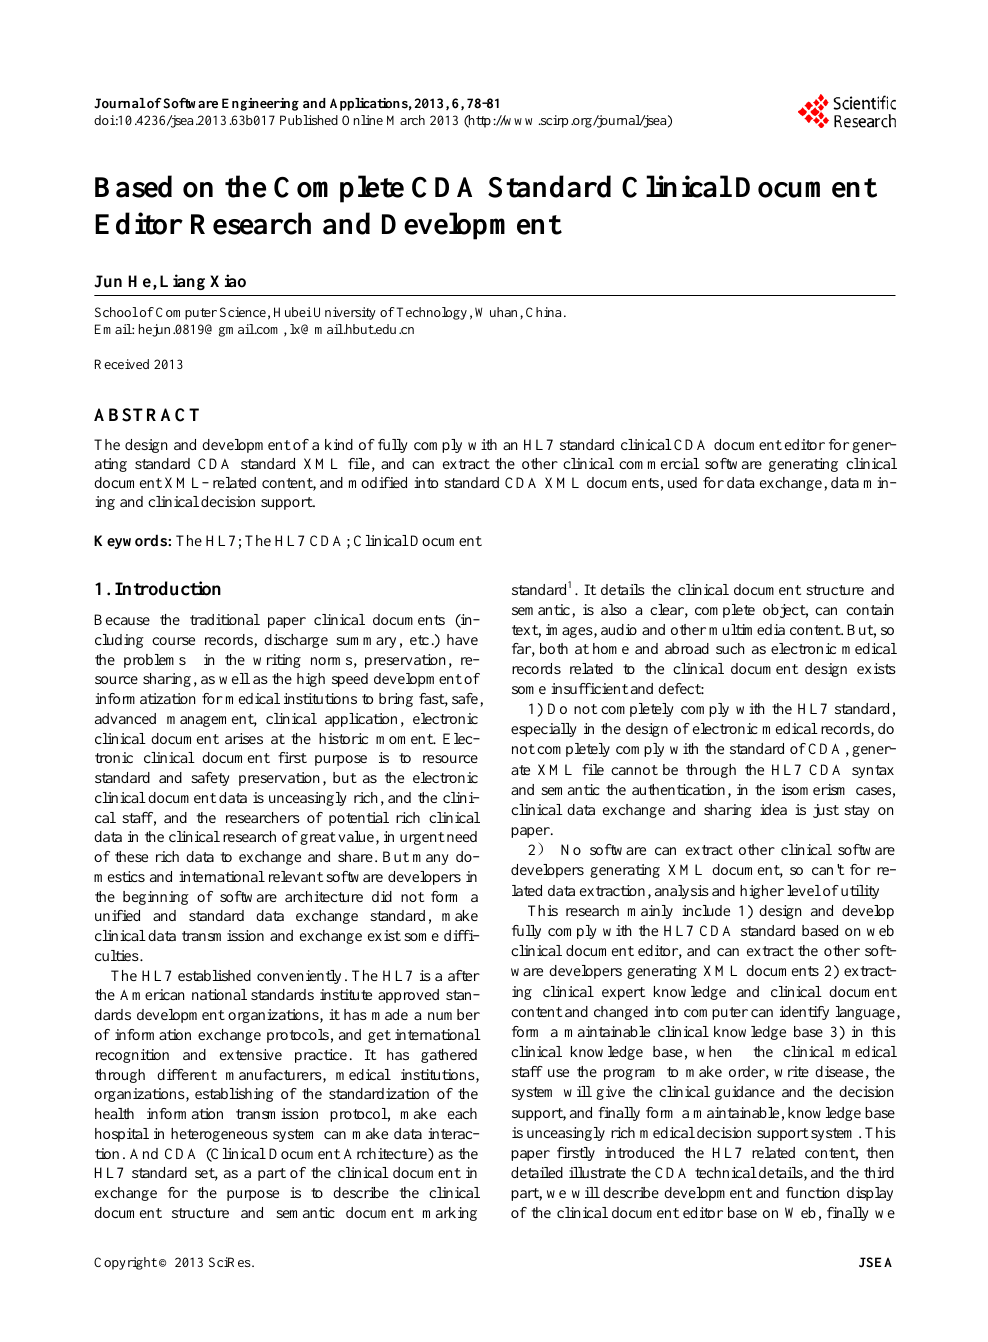 Based on the Complete CDA Standard Clinical Document Editor